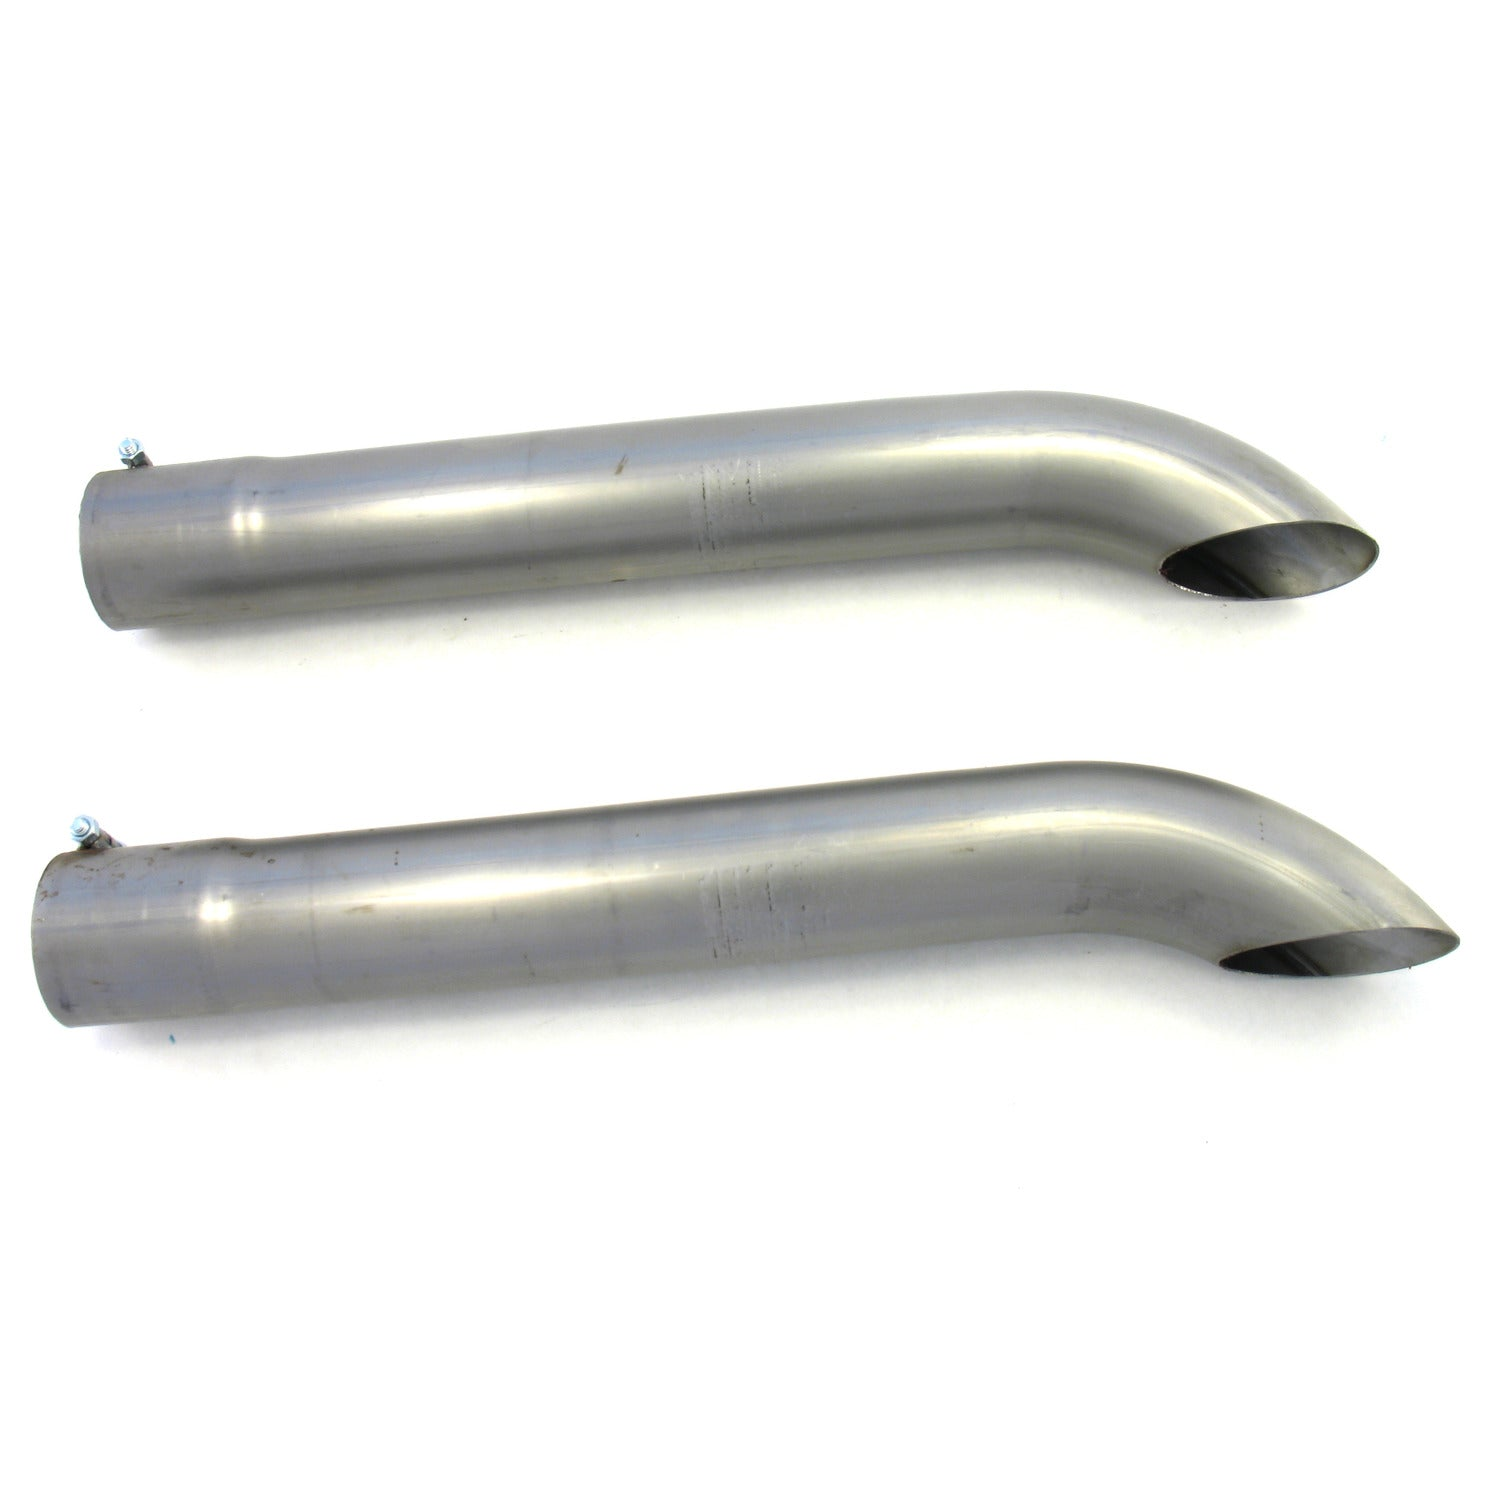 Patriot Exhaust H3814 Exhaust Turnout Inlet/Outlet 3 Inch Length 24 Inch Pair Raw Steel